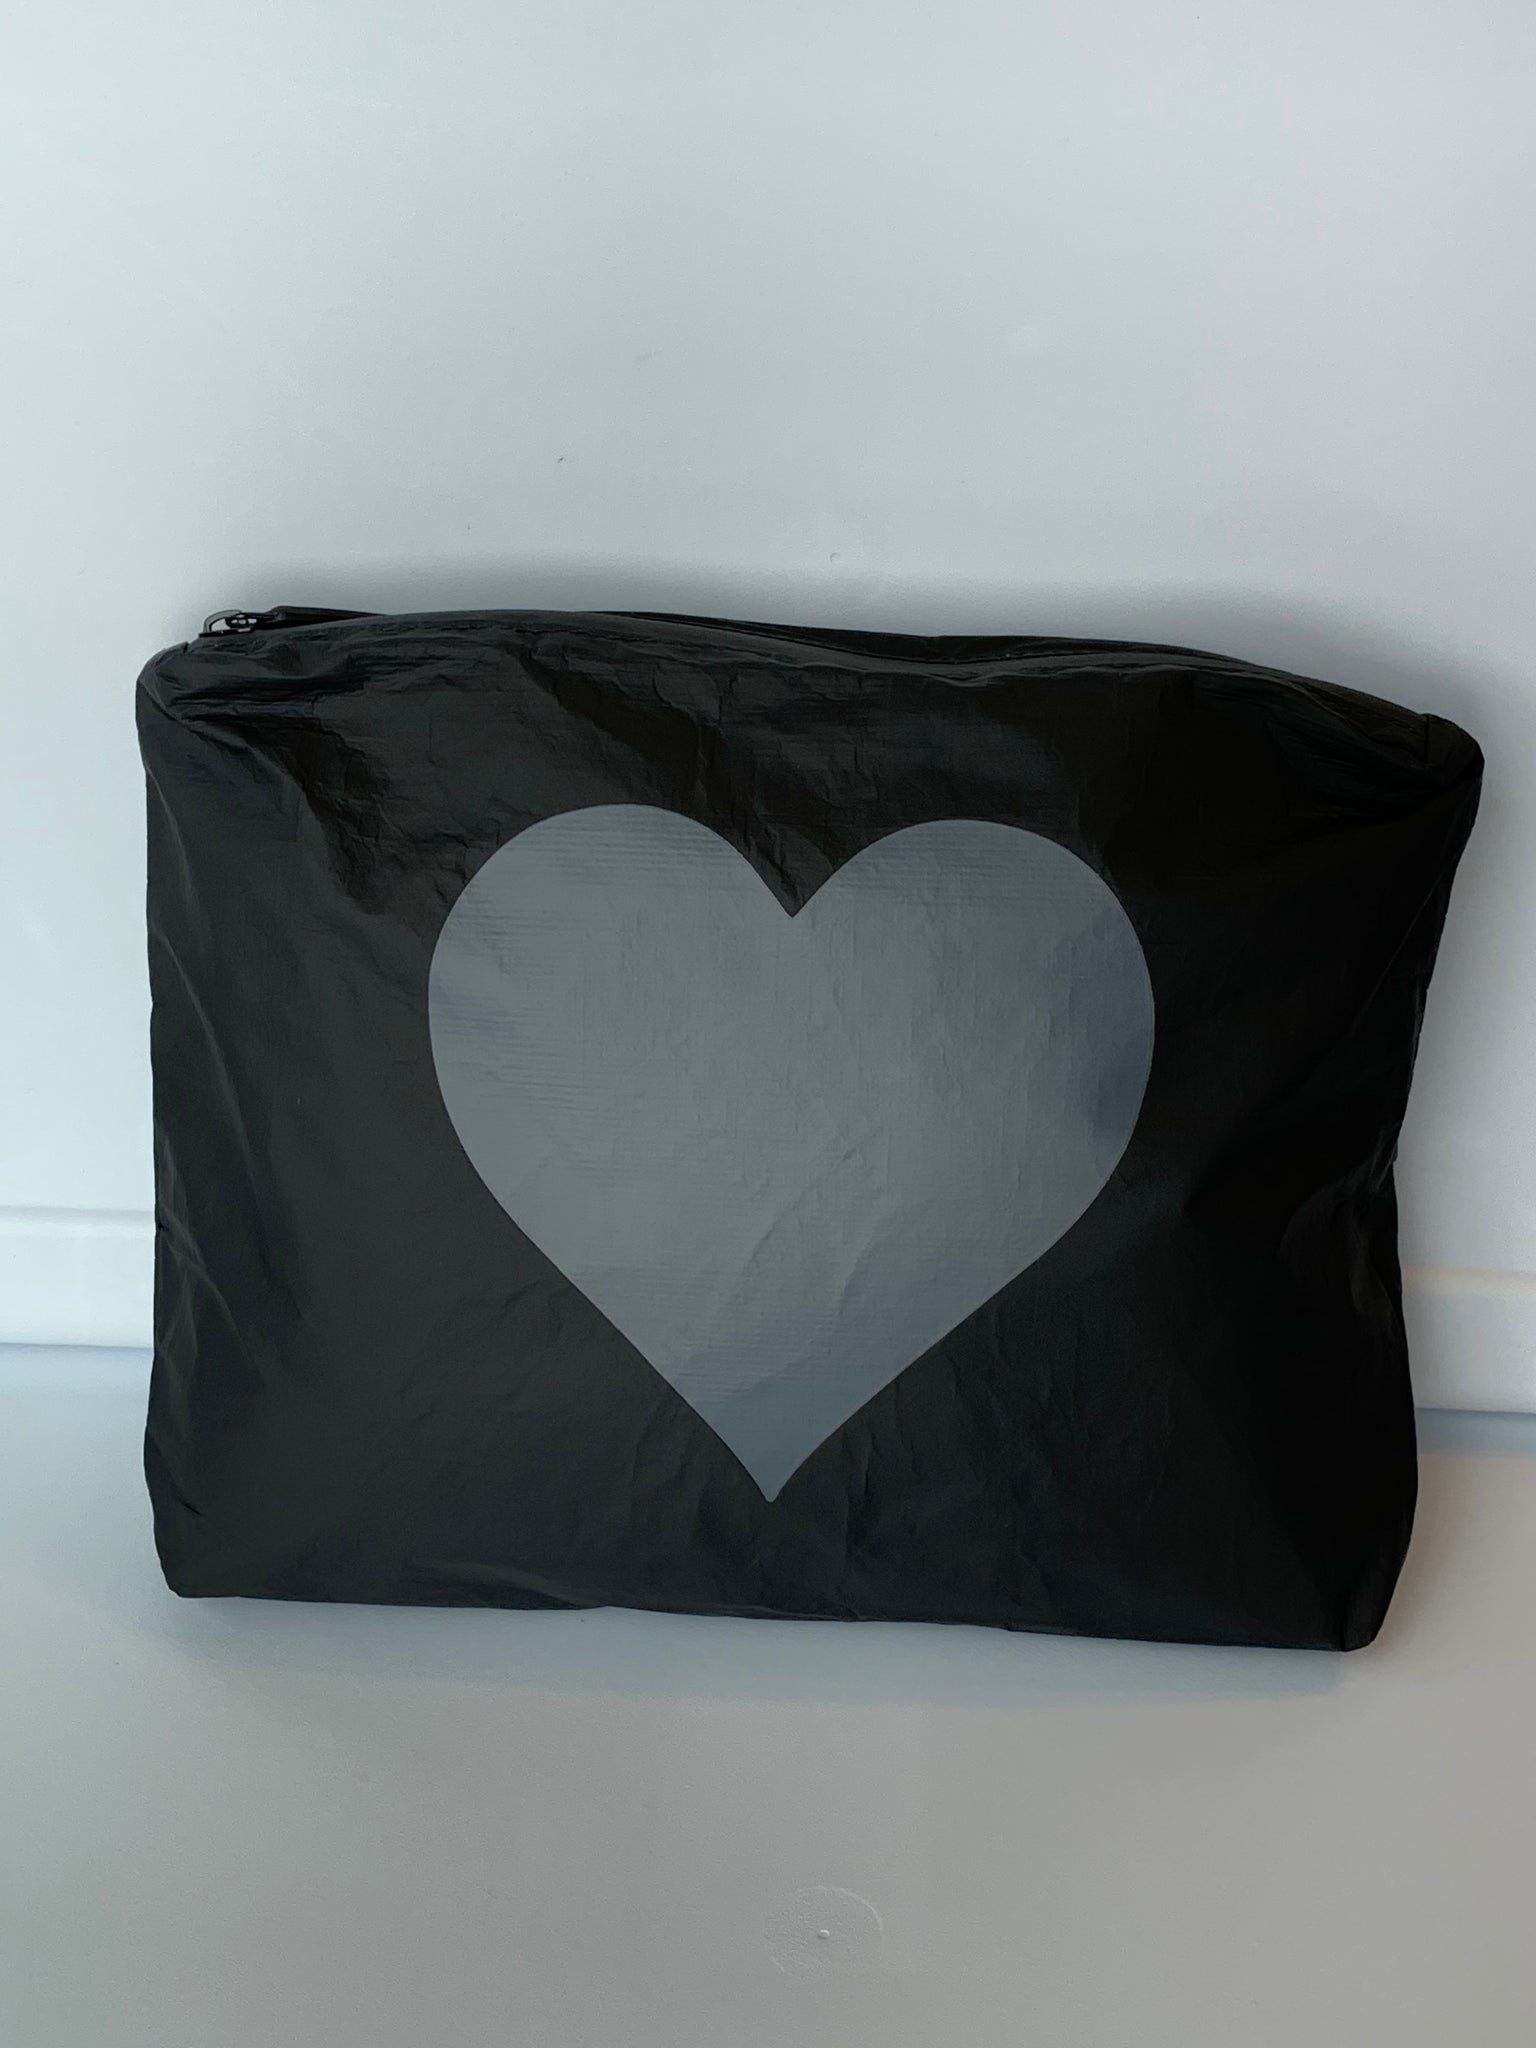 One of a Kind! Medium- Black with Tone on Tone Heart